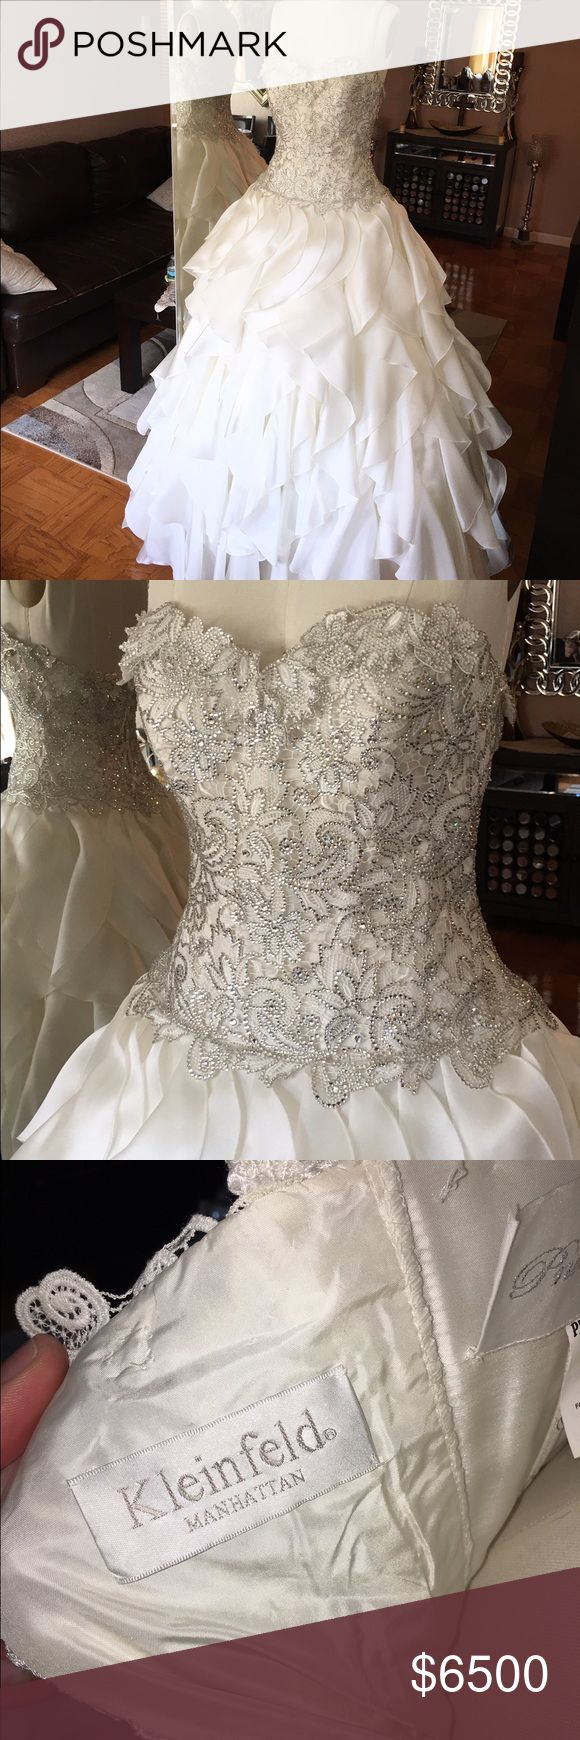 "Kleinfeld Wedding Dress Pnina Tornai . Size: Label: 16 Street: 10 Measurements: Bust: 40.5 Waist: 31 Hips: 42 Height With Shoes: 5' 9"" Details: Silhouette: Ball Gown Neckline: Sweetheart (Strapless) Waistline: Dropped Waist Sleeve Style: Strapless Back Style: Dress Length: Floor Length Color Family: Shades of Ivory Color: Ivory Seller is: Individual Original Owner: yes This beautiful Pnina Tornia ballgown is only available in Kleinfeld's bridal in New York. The dress is amazing and fit for a…"